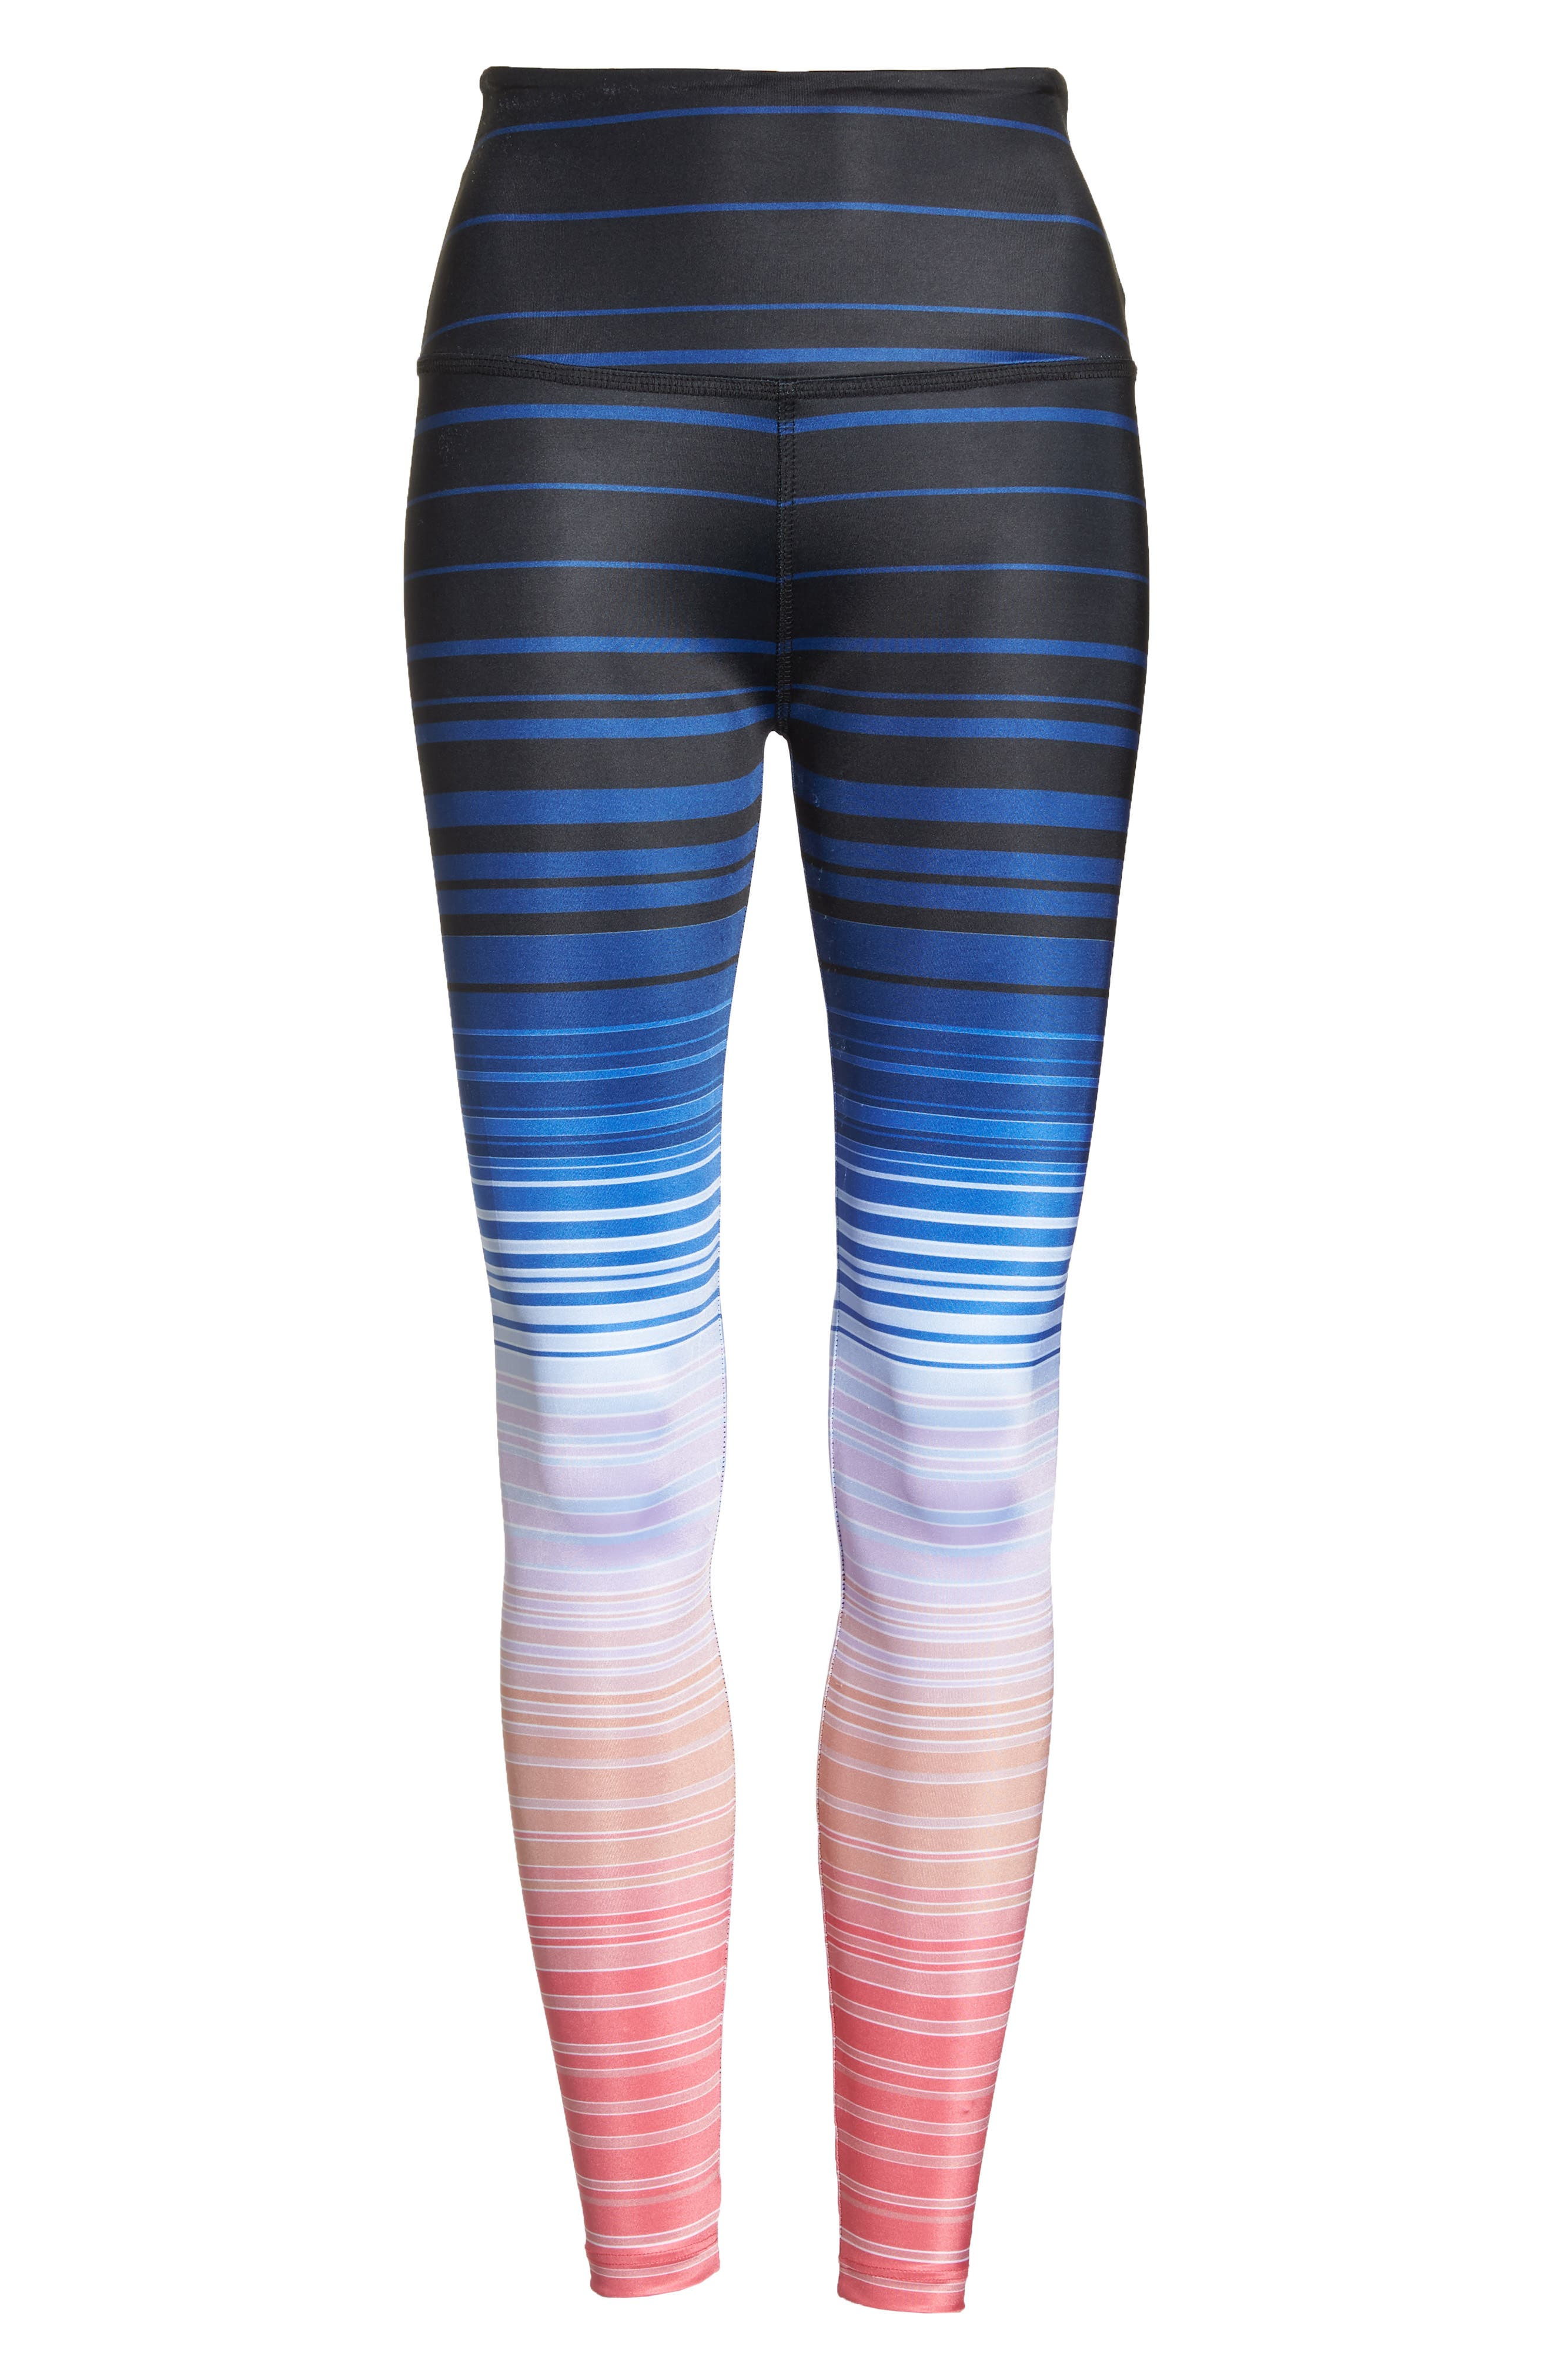 Summer Shades High Waist Leggings,                             Alternate thumbnail 7, color,                             Summer Shades